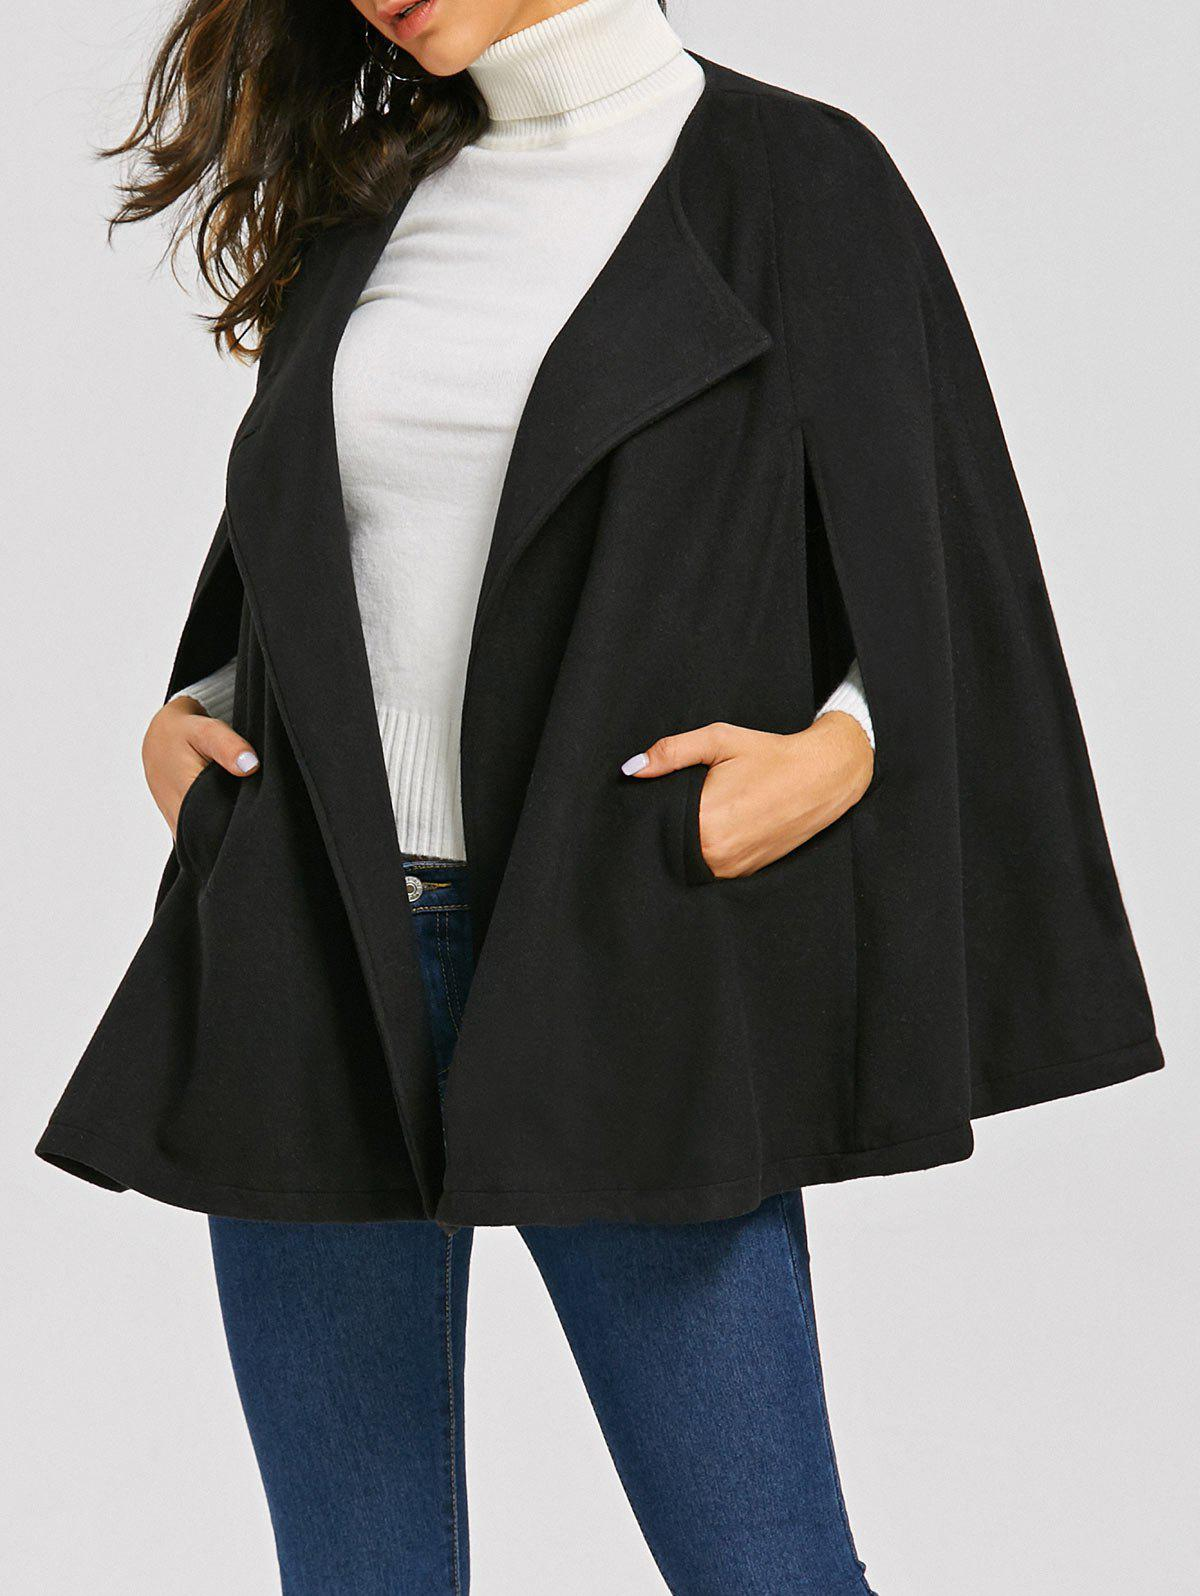 Batwing Sleeve Woollen Cape CoatWOMEN<br><br>Size: 2XL; Color: BLACK; Clothes Type: Wool &amp; Blends; Material: Polyester; Type: Bat Sleeved; Shirt Length: Regular; Sleeve Length: Full; Collar: Round Collar; Pattern Type: Solid; Style: Fashion; Season: Fall,Spring; Weight: 0.7000kg; Package Contents: 1 x Coat;